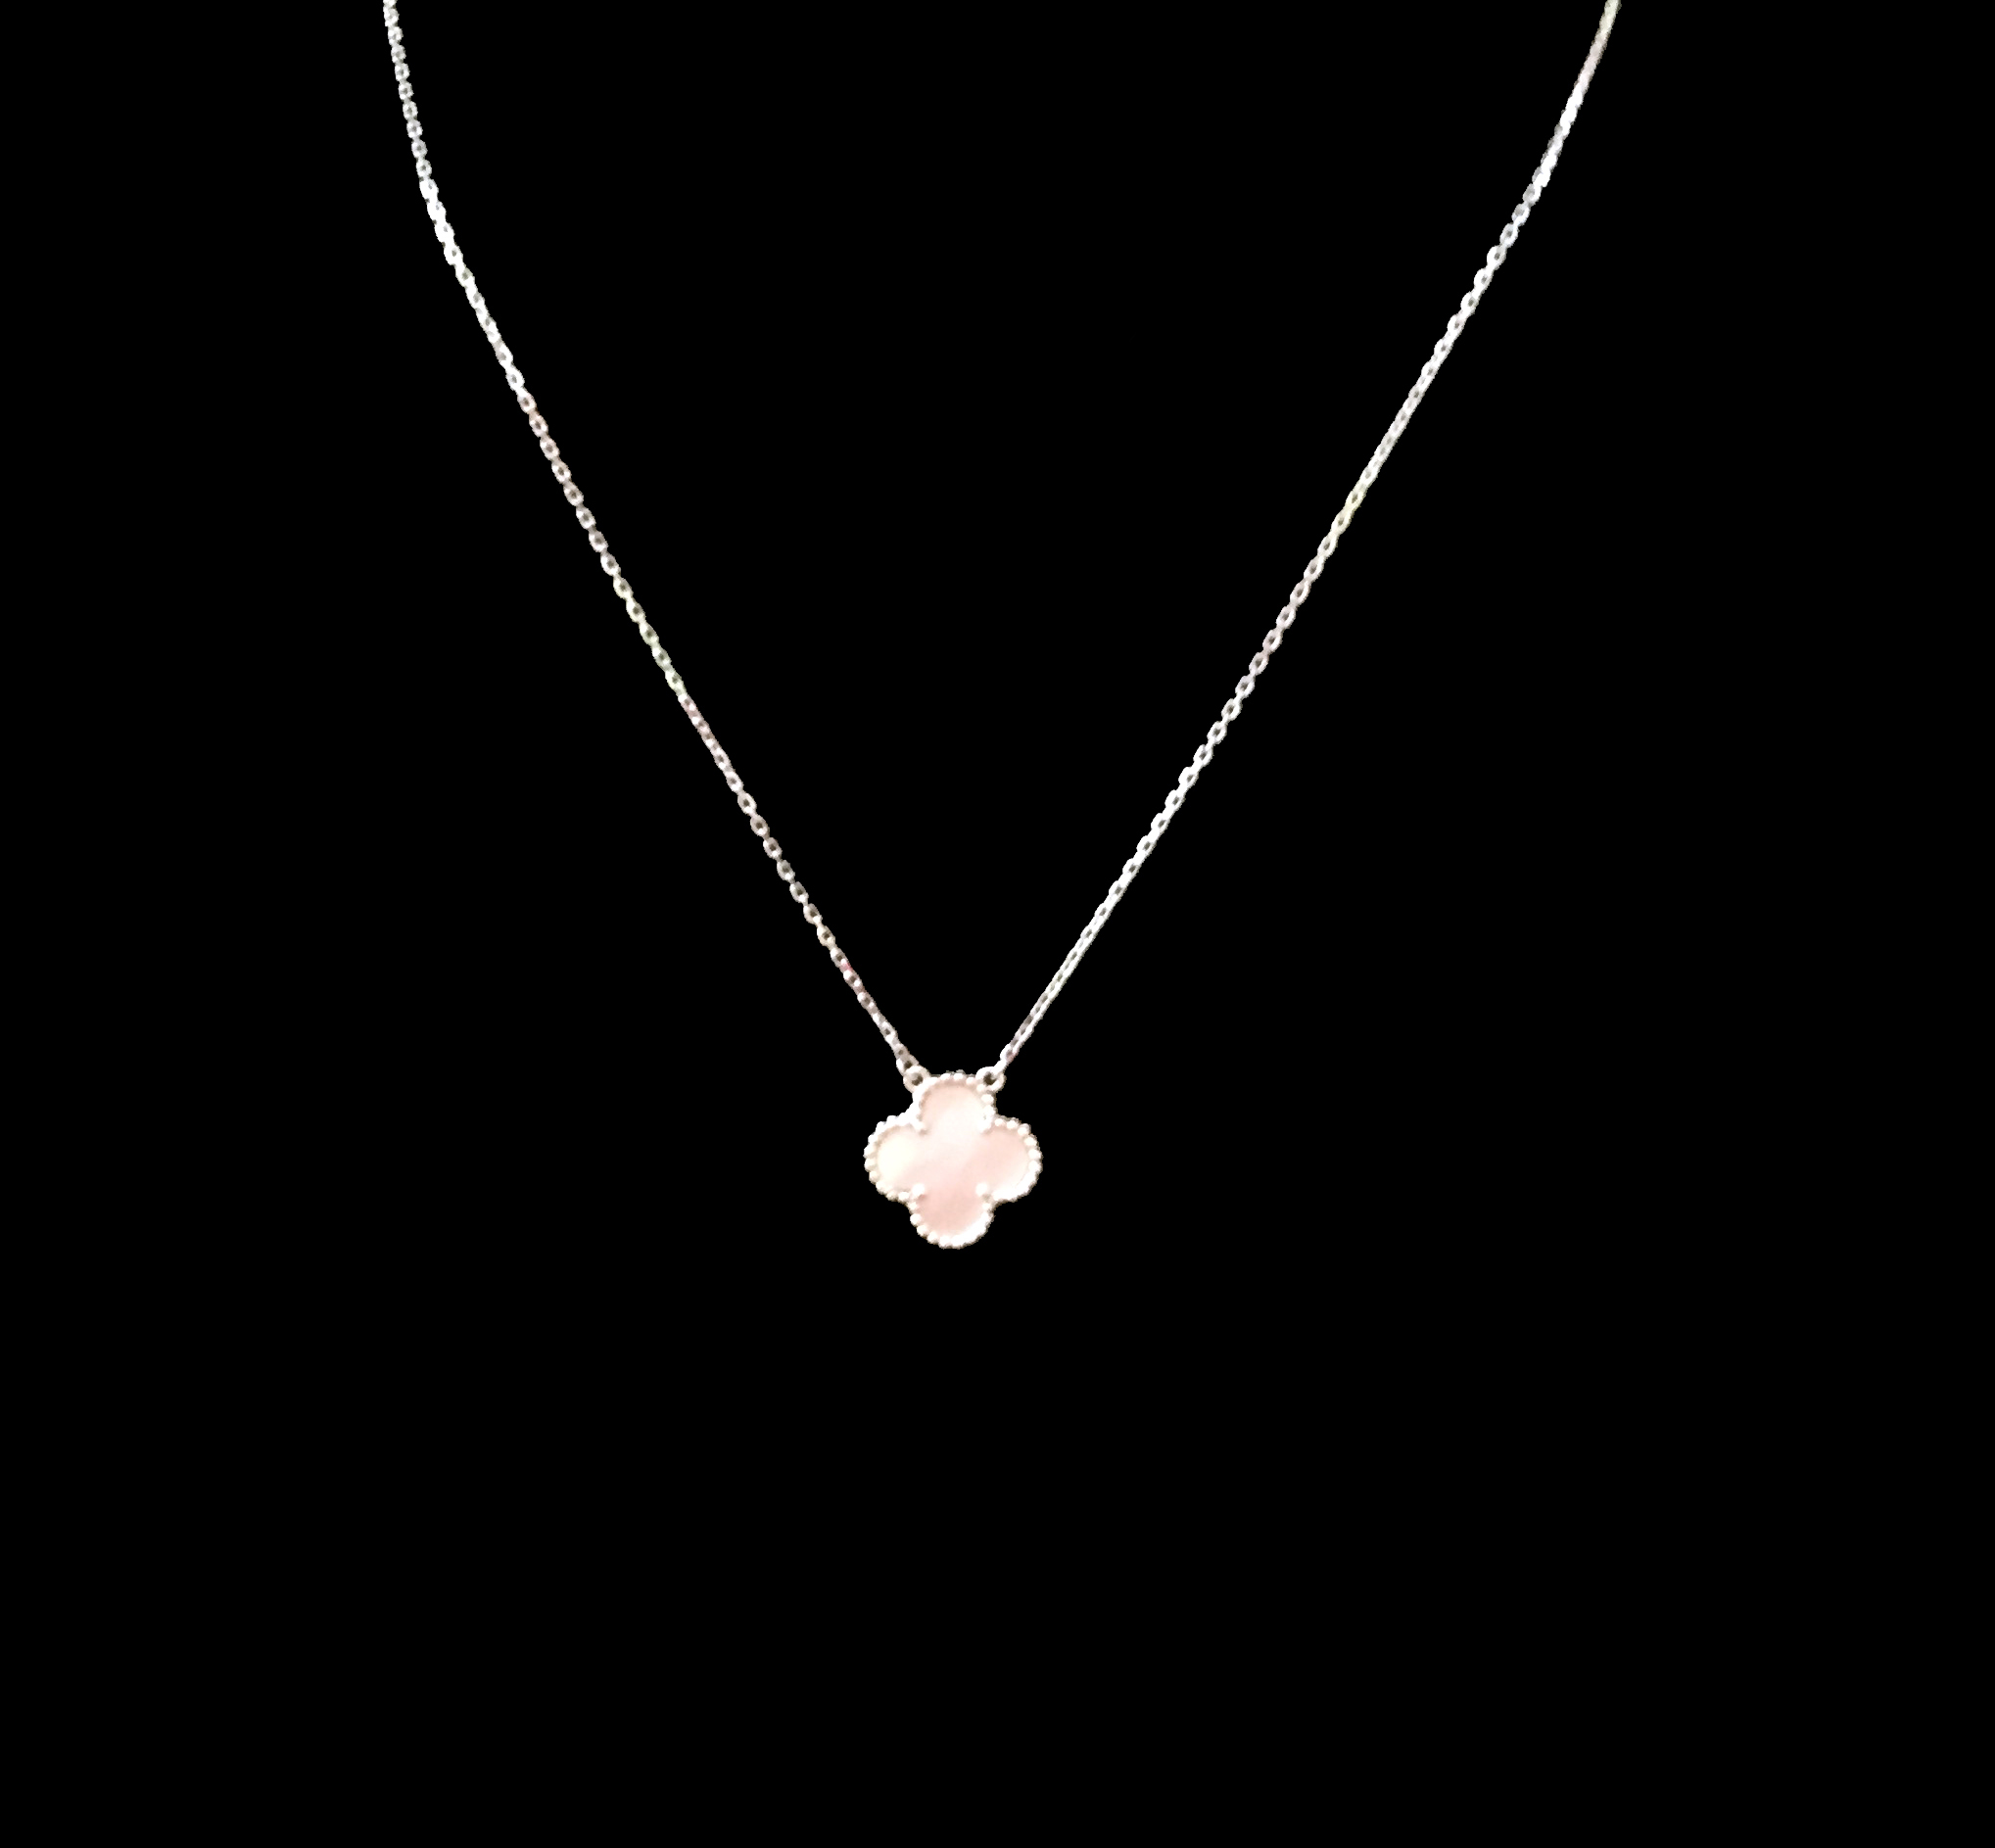 Van Cleef Clover Necklace: Sterling Silver Single Clover Necklace With Mother Of